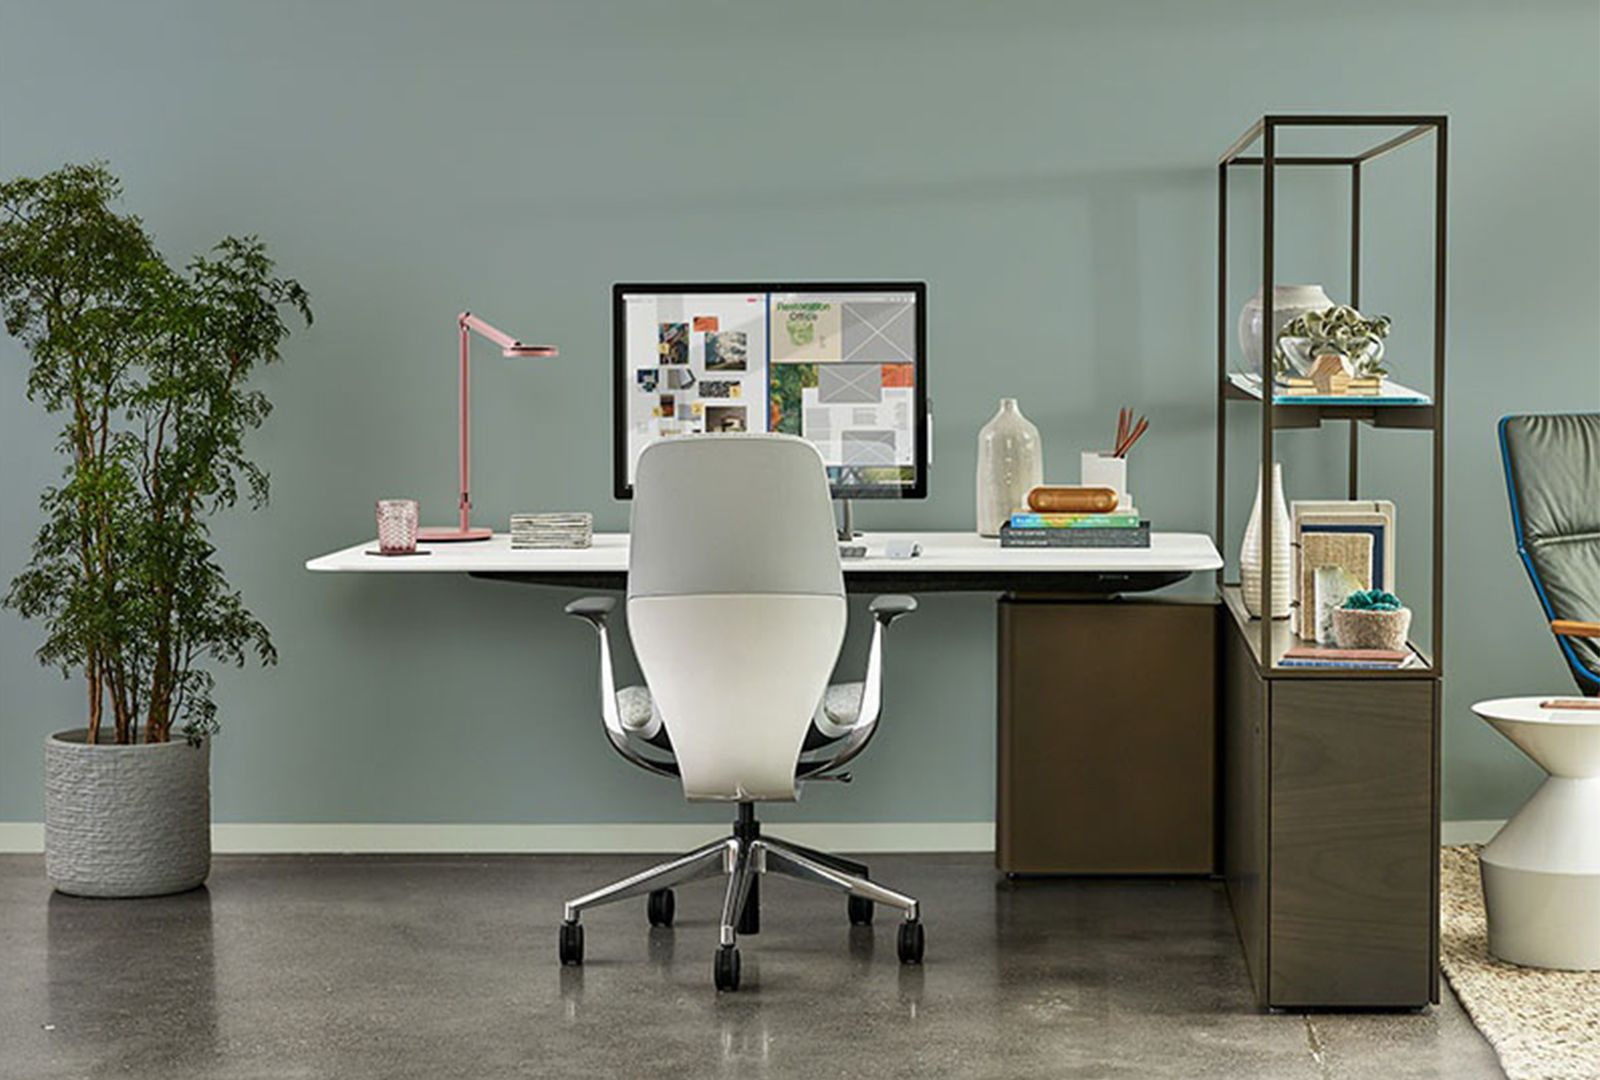 Partnership with Steelcase